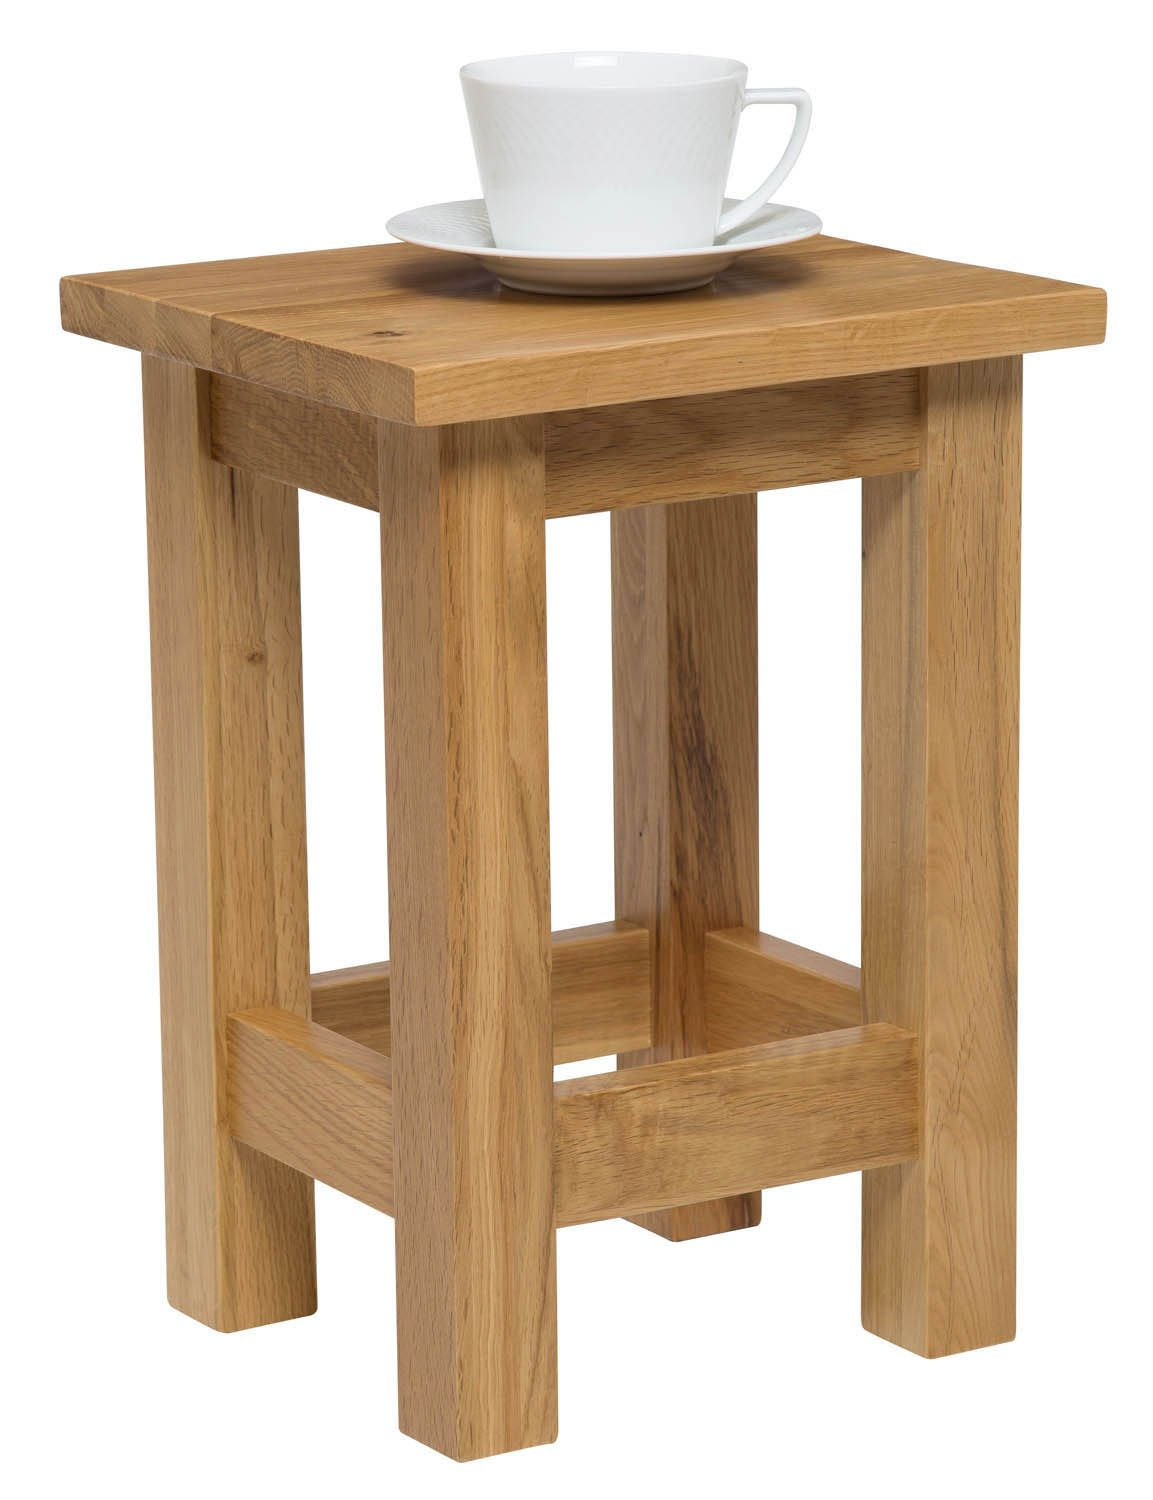 Waverly oak small side table in light finish solid wooden for Slim side table